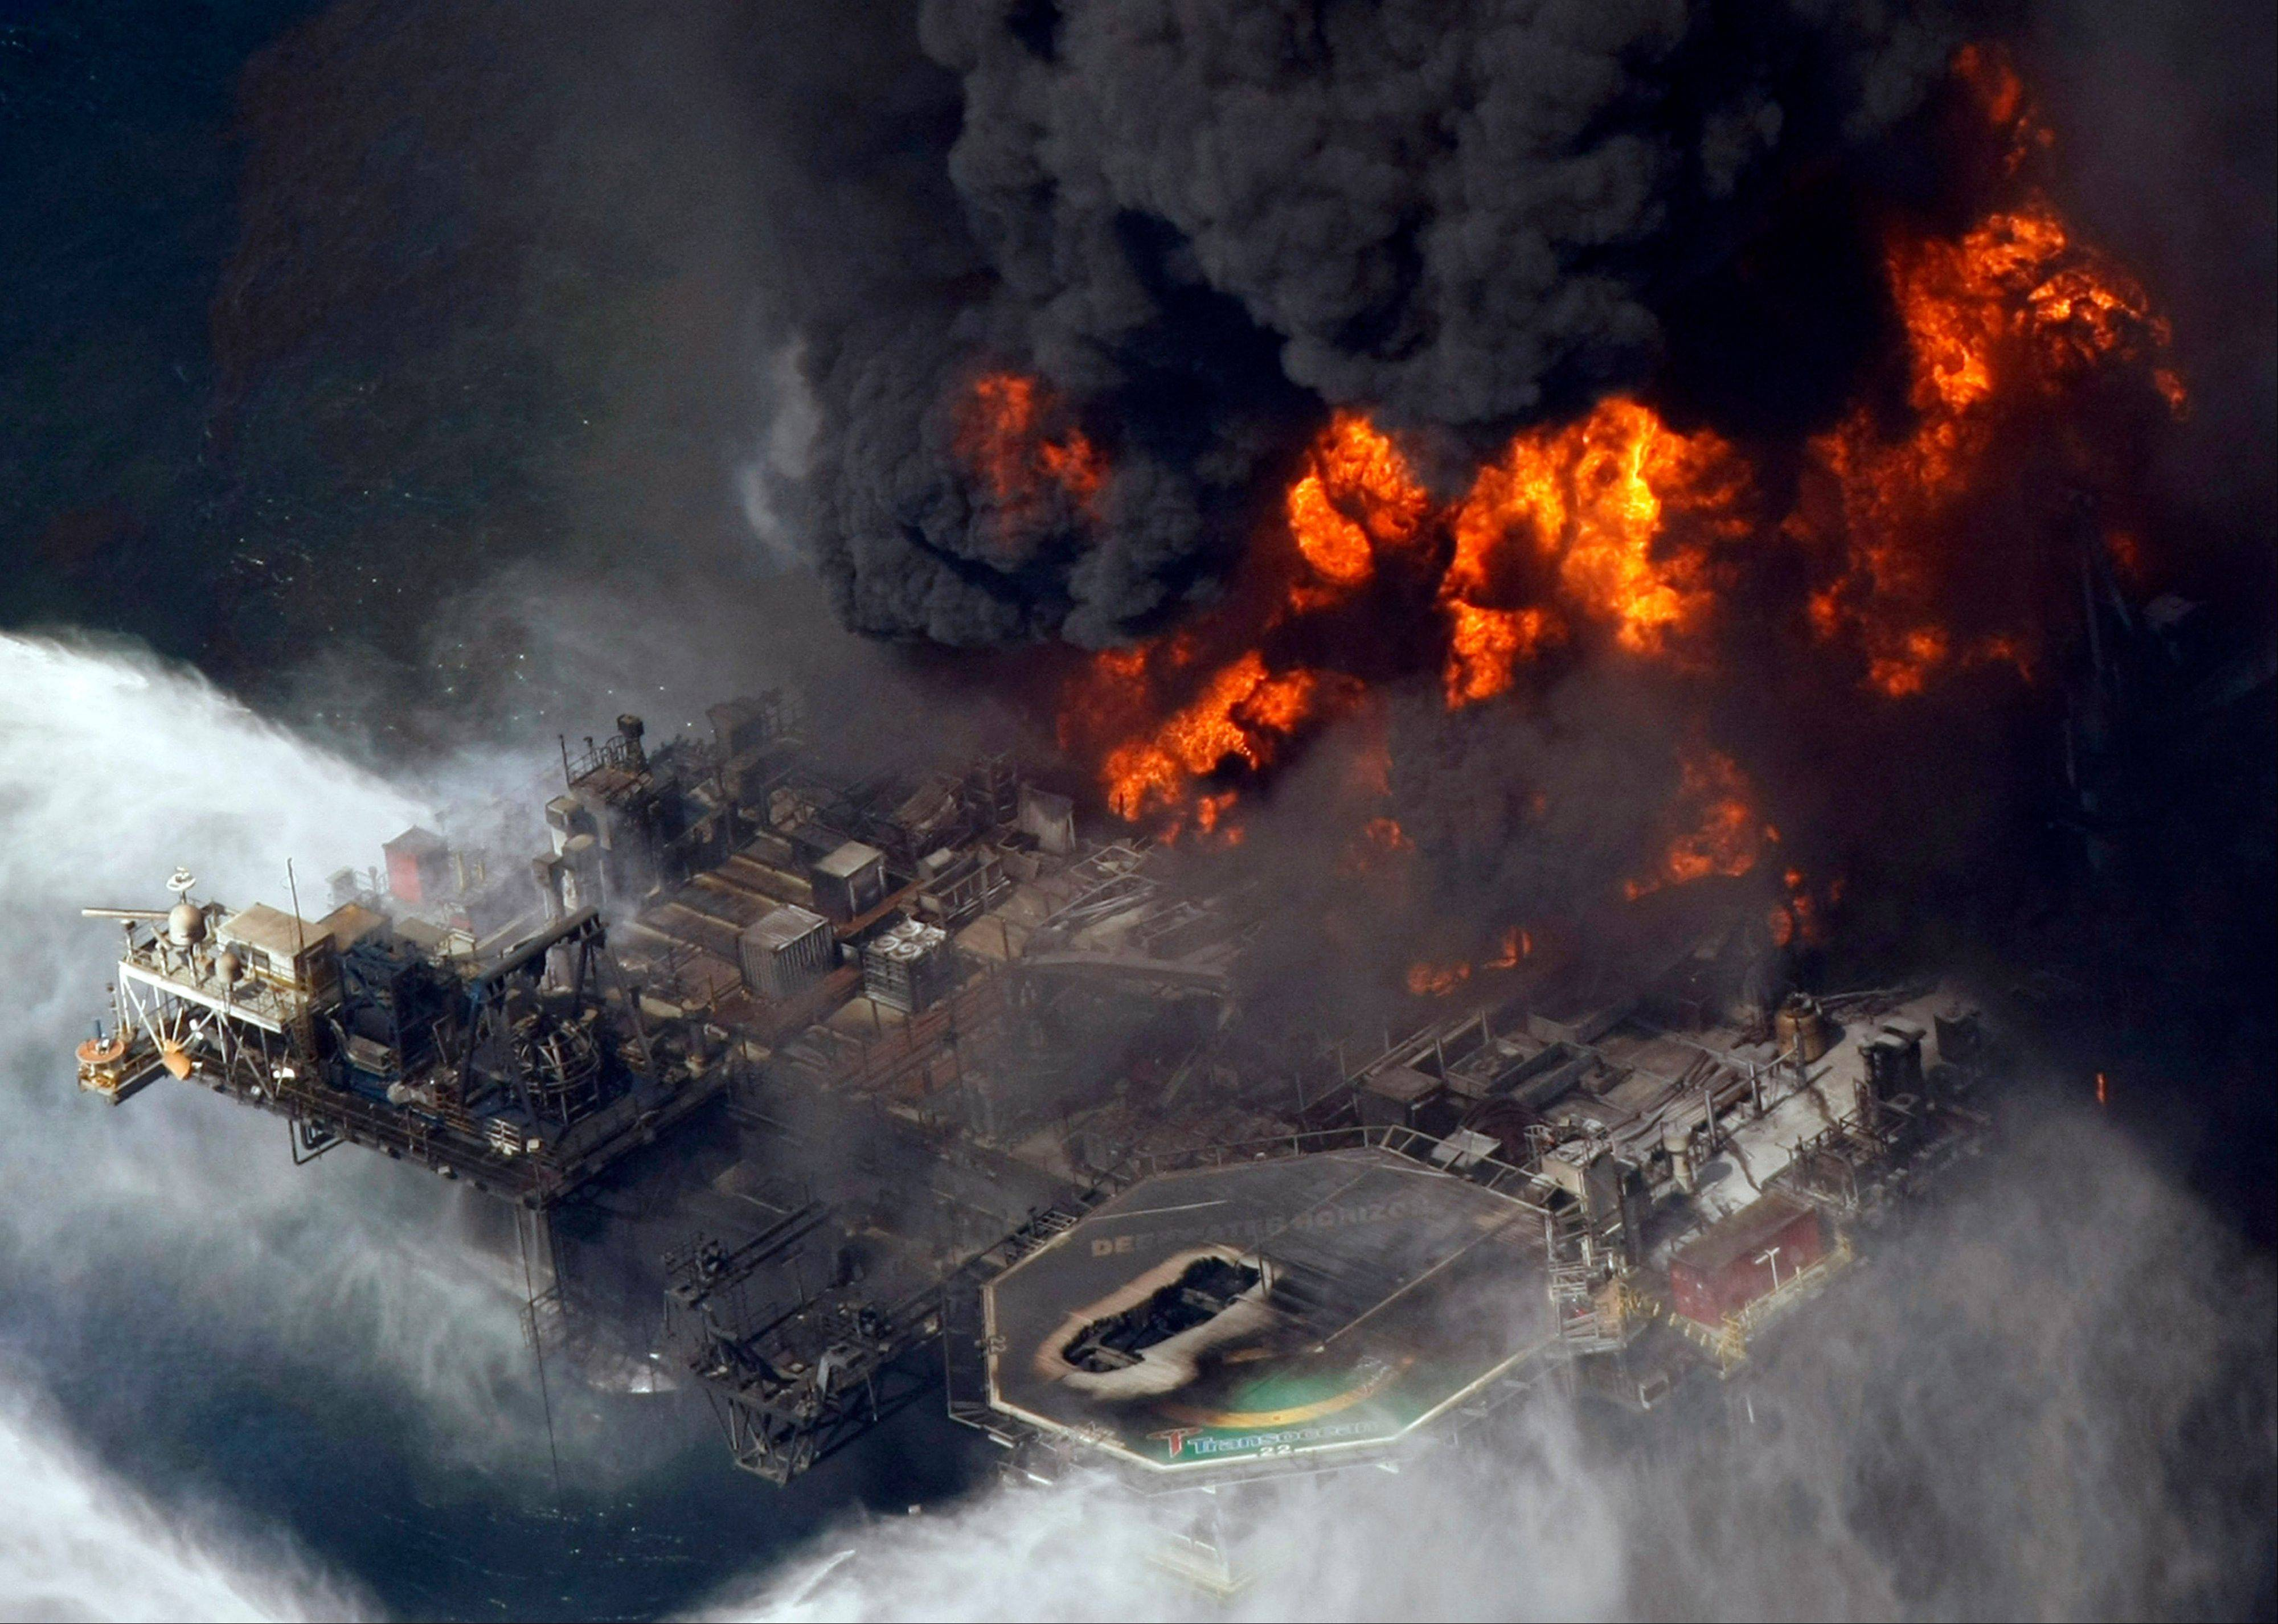 The Justice Department has reached a $1.4 billion settlement with Transocean Ltd., the owner of the drilling rig that sank after an explosion killed 11 workers and spawned the massive 2010 oil spill in the gulf. On Thursday, Jan. 3, 2013, two people with knowledge of the negotiations say Switzerland-based Transocean would pay the money to resolve the department�s civil and criminal probe of the company�s role in the Deepwater Horizon disaster.